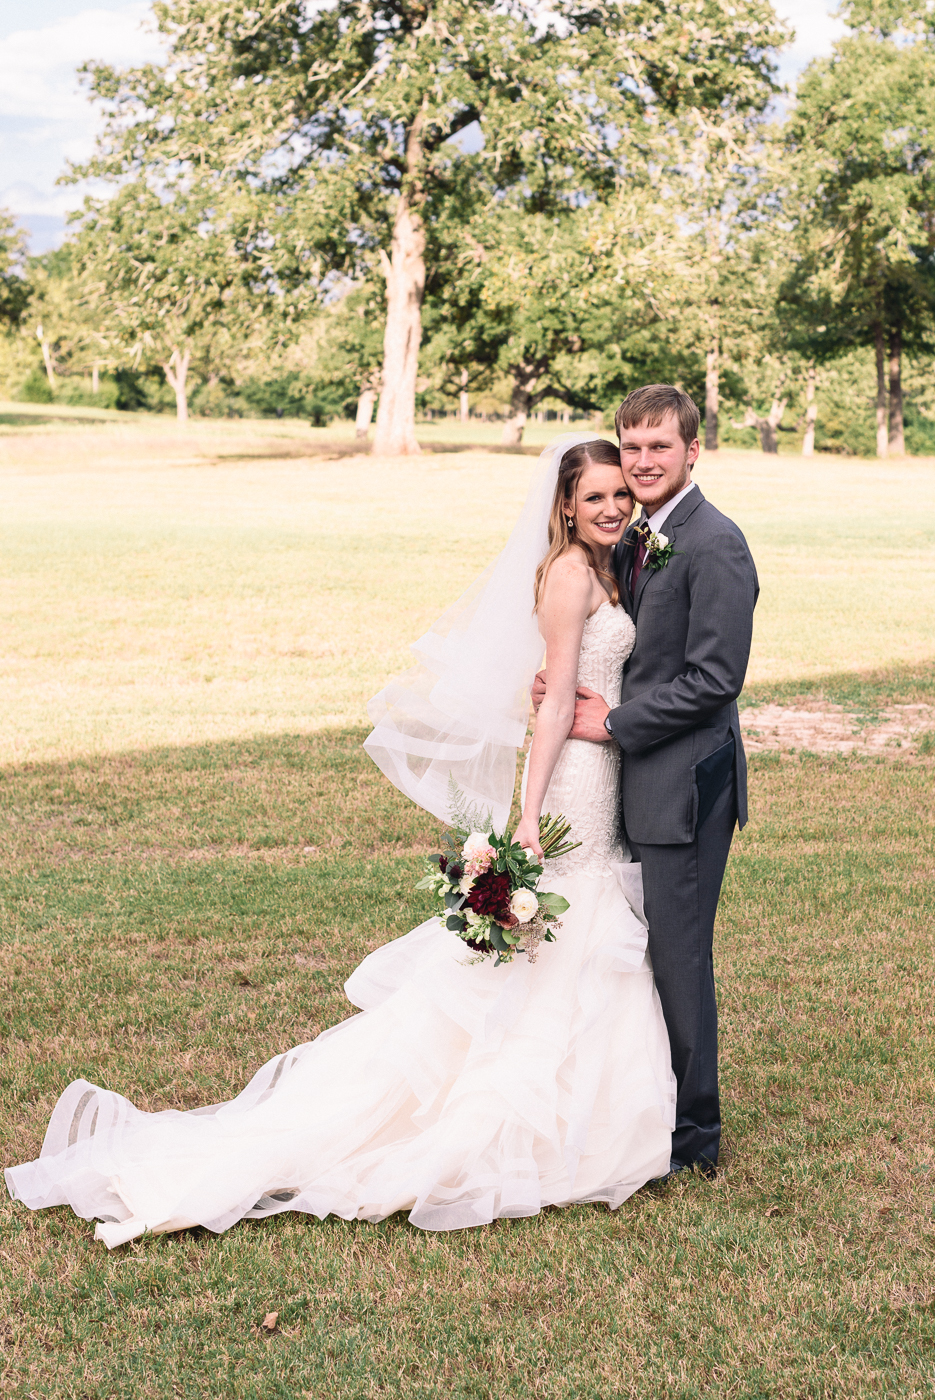 Husband and wife wedding portrait broken arrow ranch college station wedding gown train